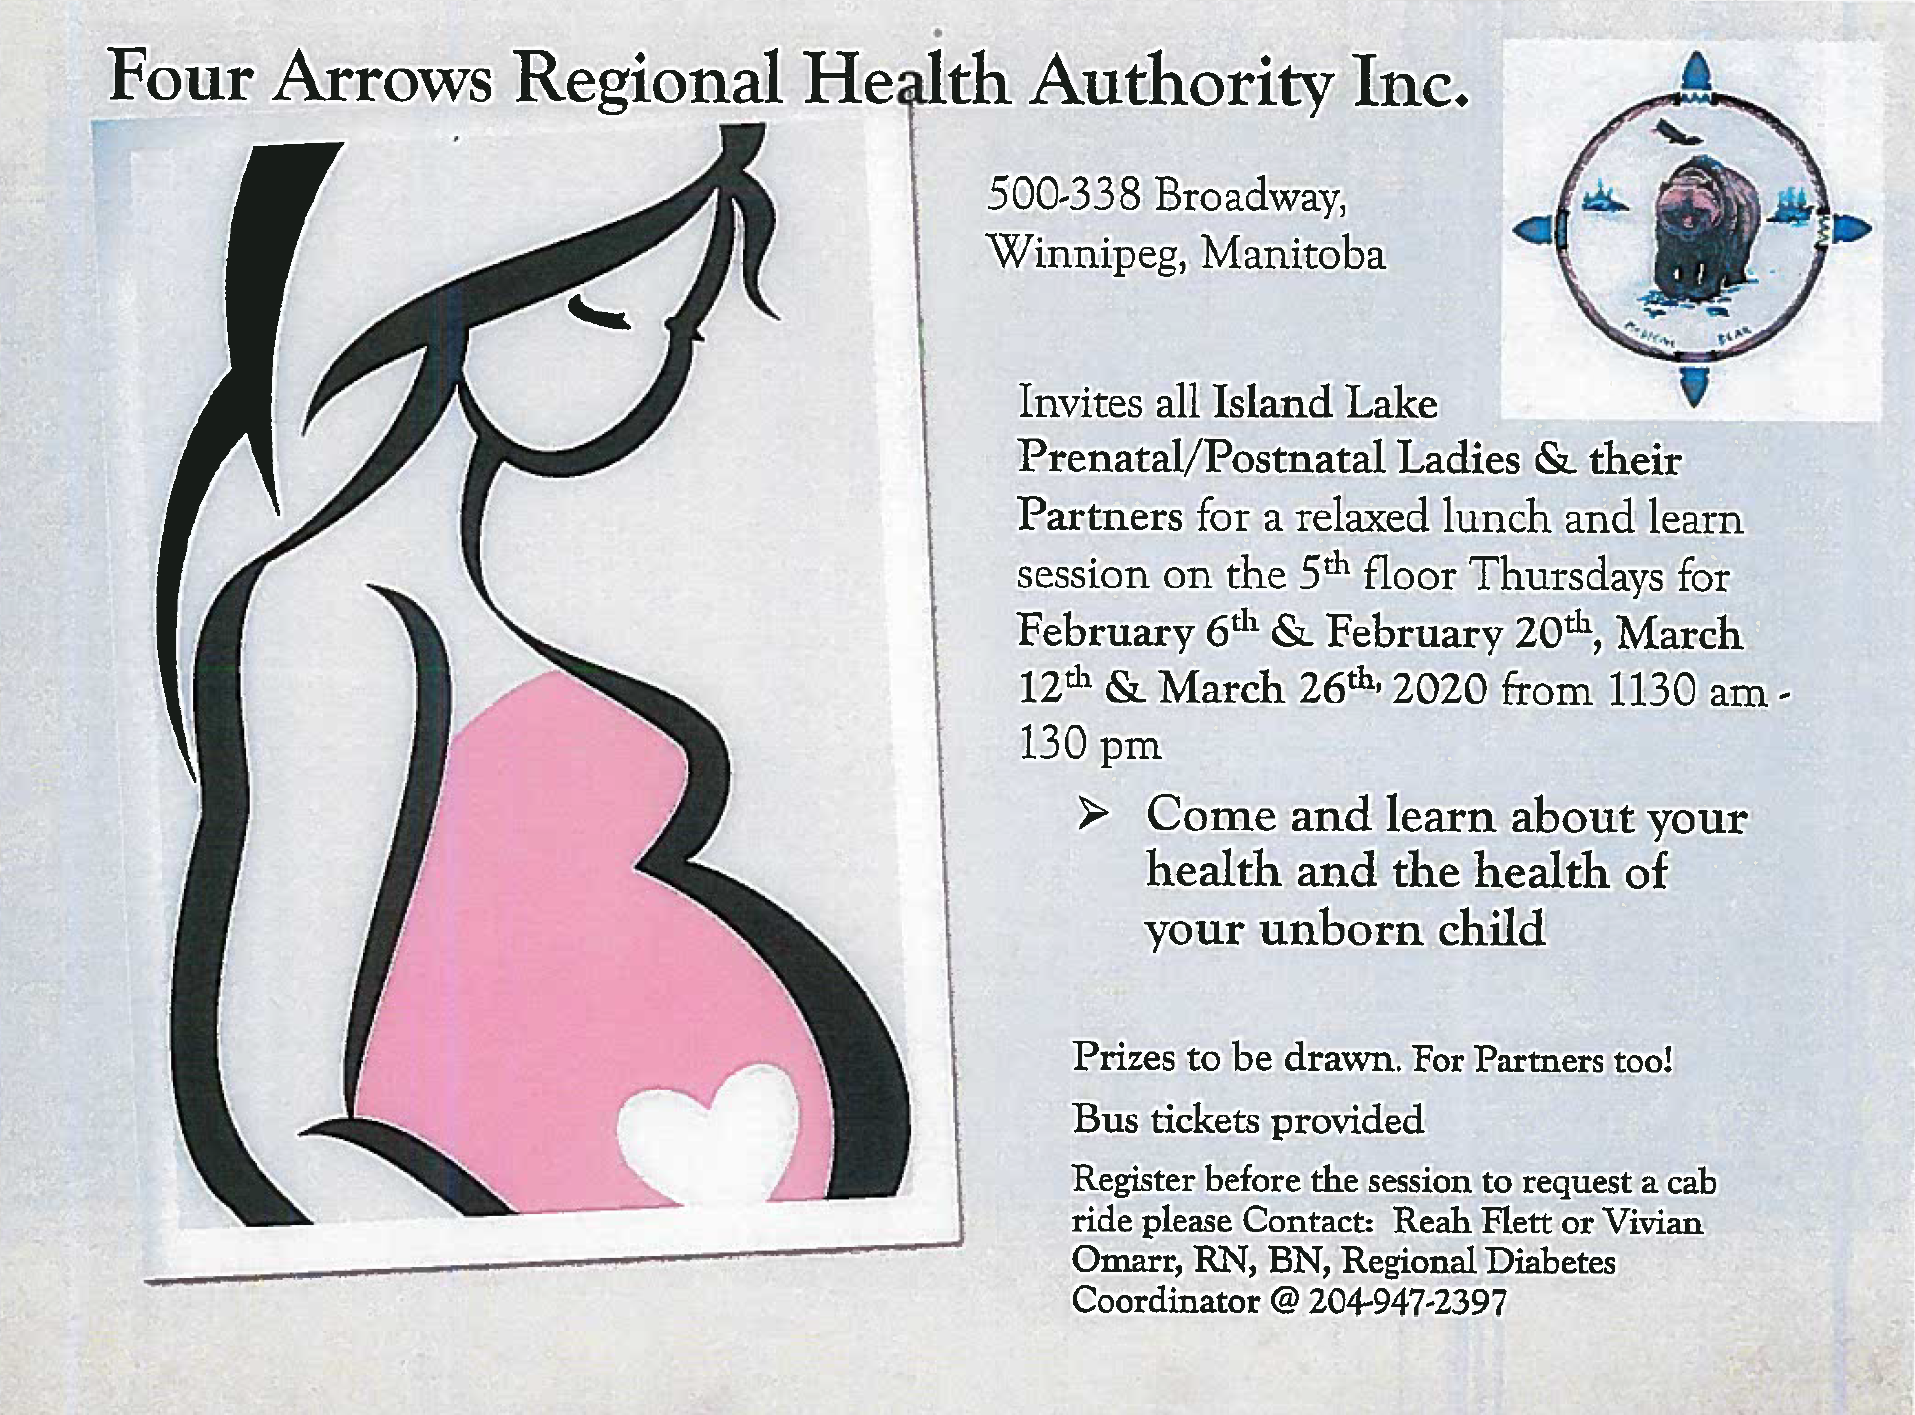 You are currently viewing Invitation To Island Lake Prenatal/Postnatal Ladies & Their Partners for a relaxed lunch and learn session